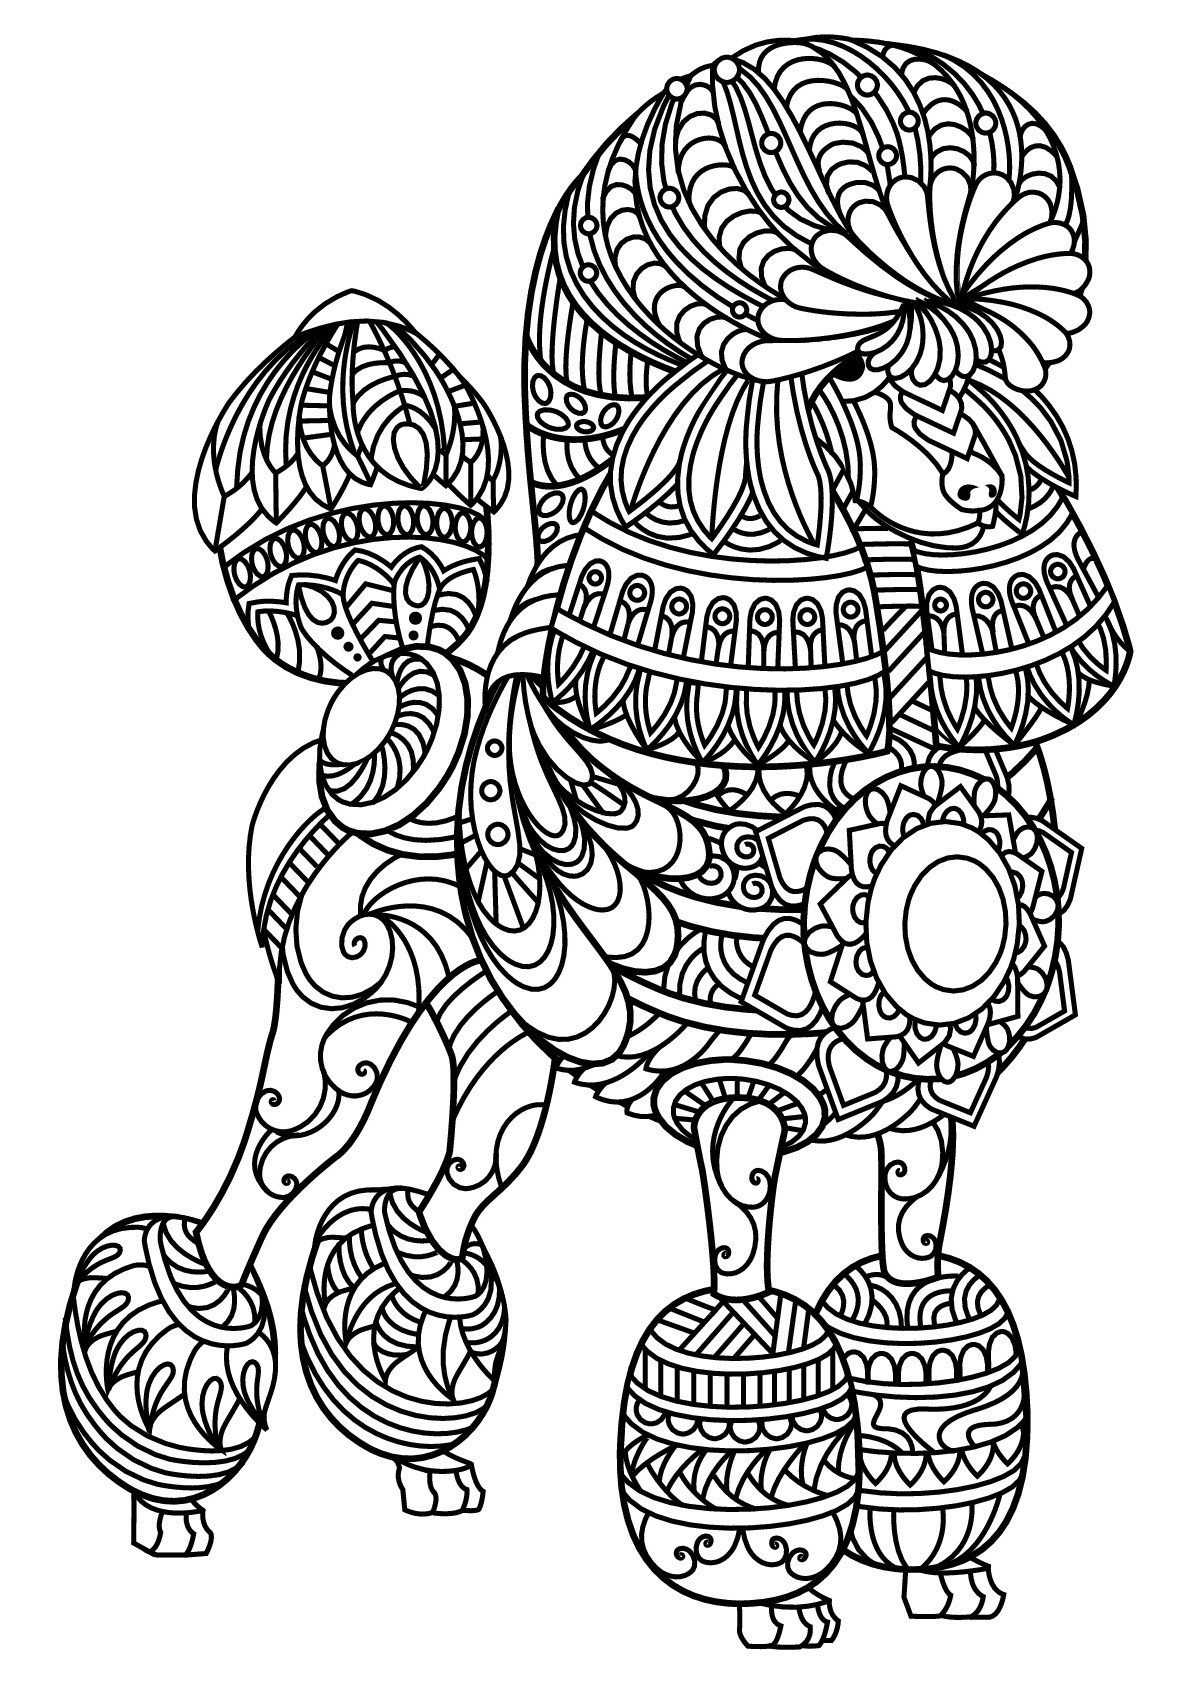 Pin On Adult Coloring [ 1684 x 1191 Pixel ]